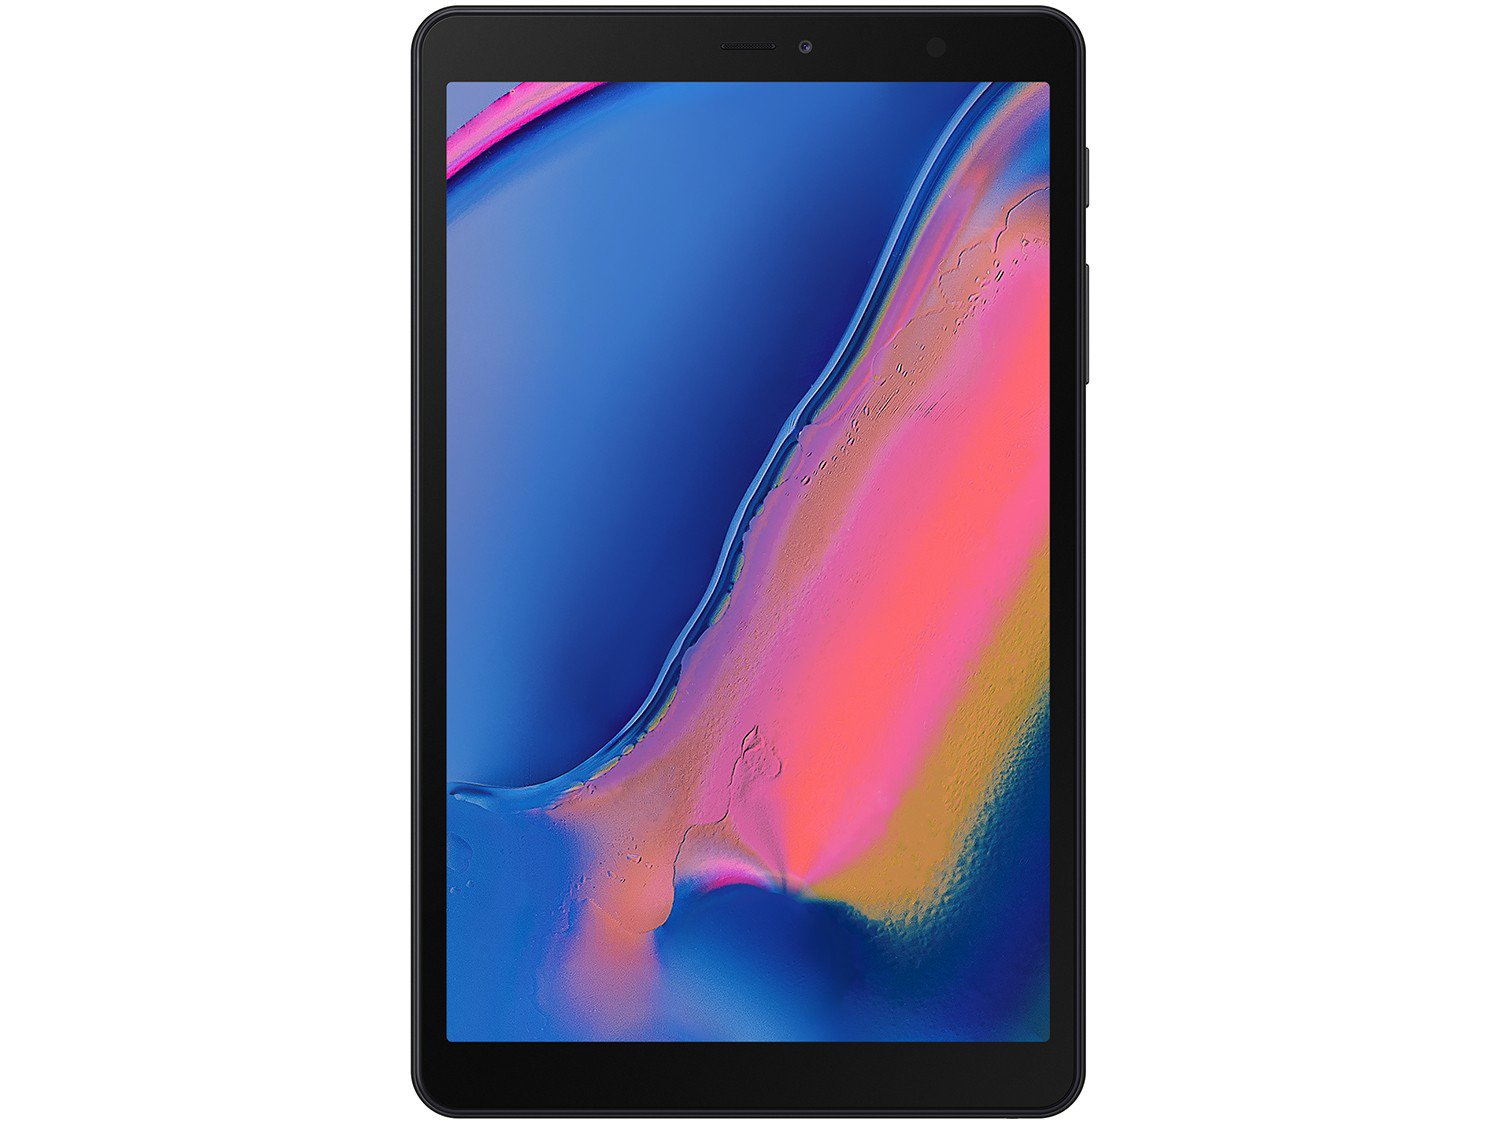 Foto 3 - Tablet Samsung Galaxy TAB A S Pen com Caneta - 32GB 8 4G Wi-Fi Android 9.1 Octa Core Câm. 8MP